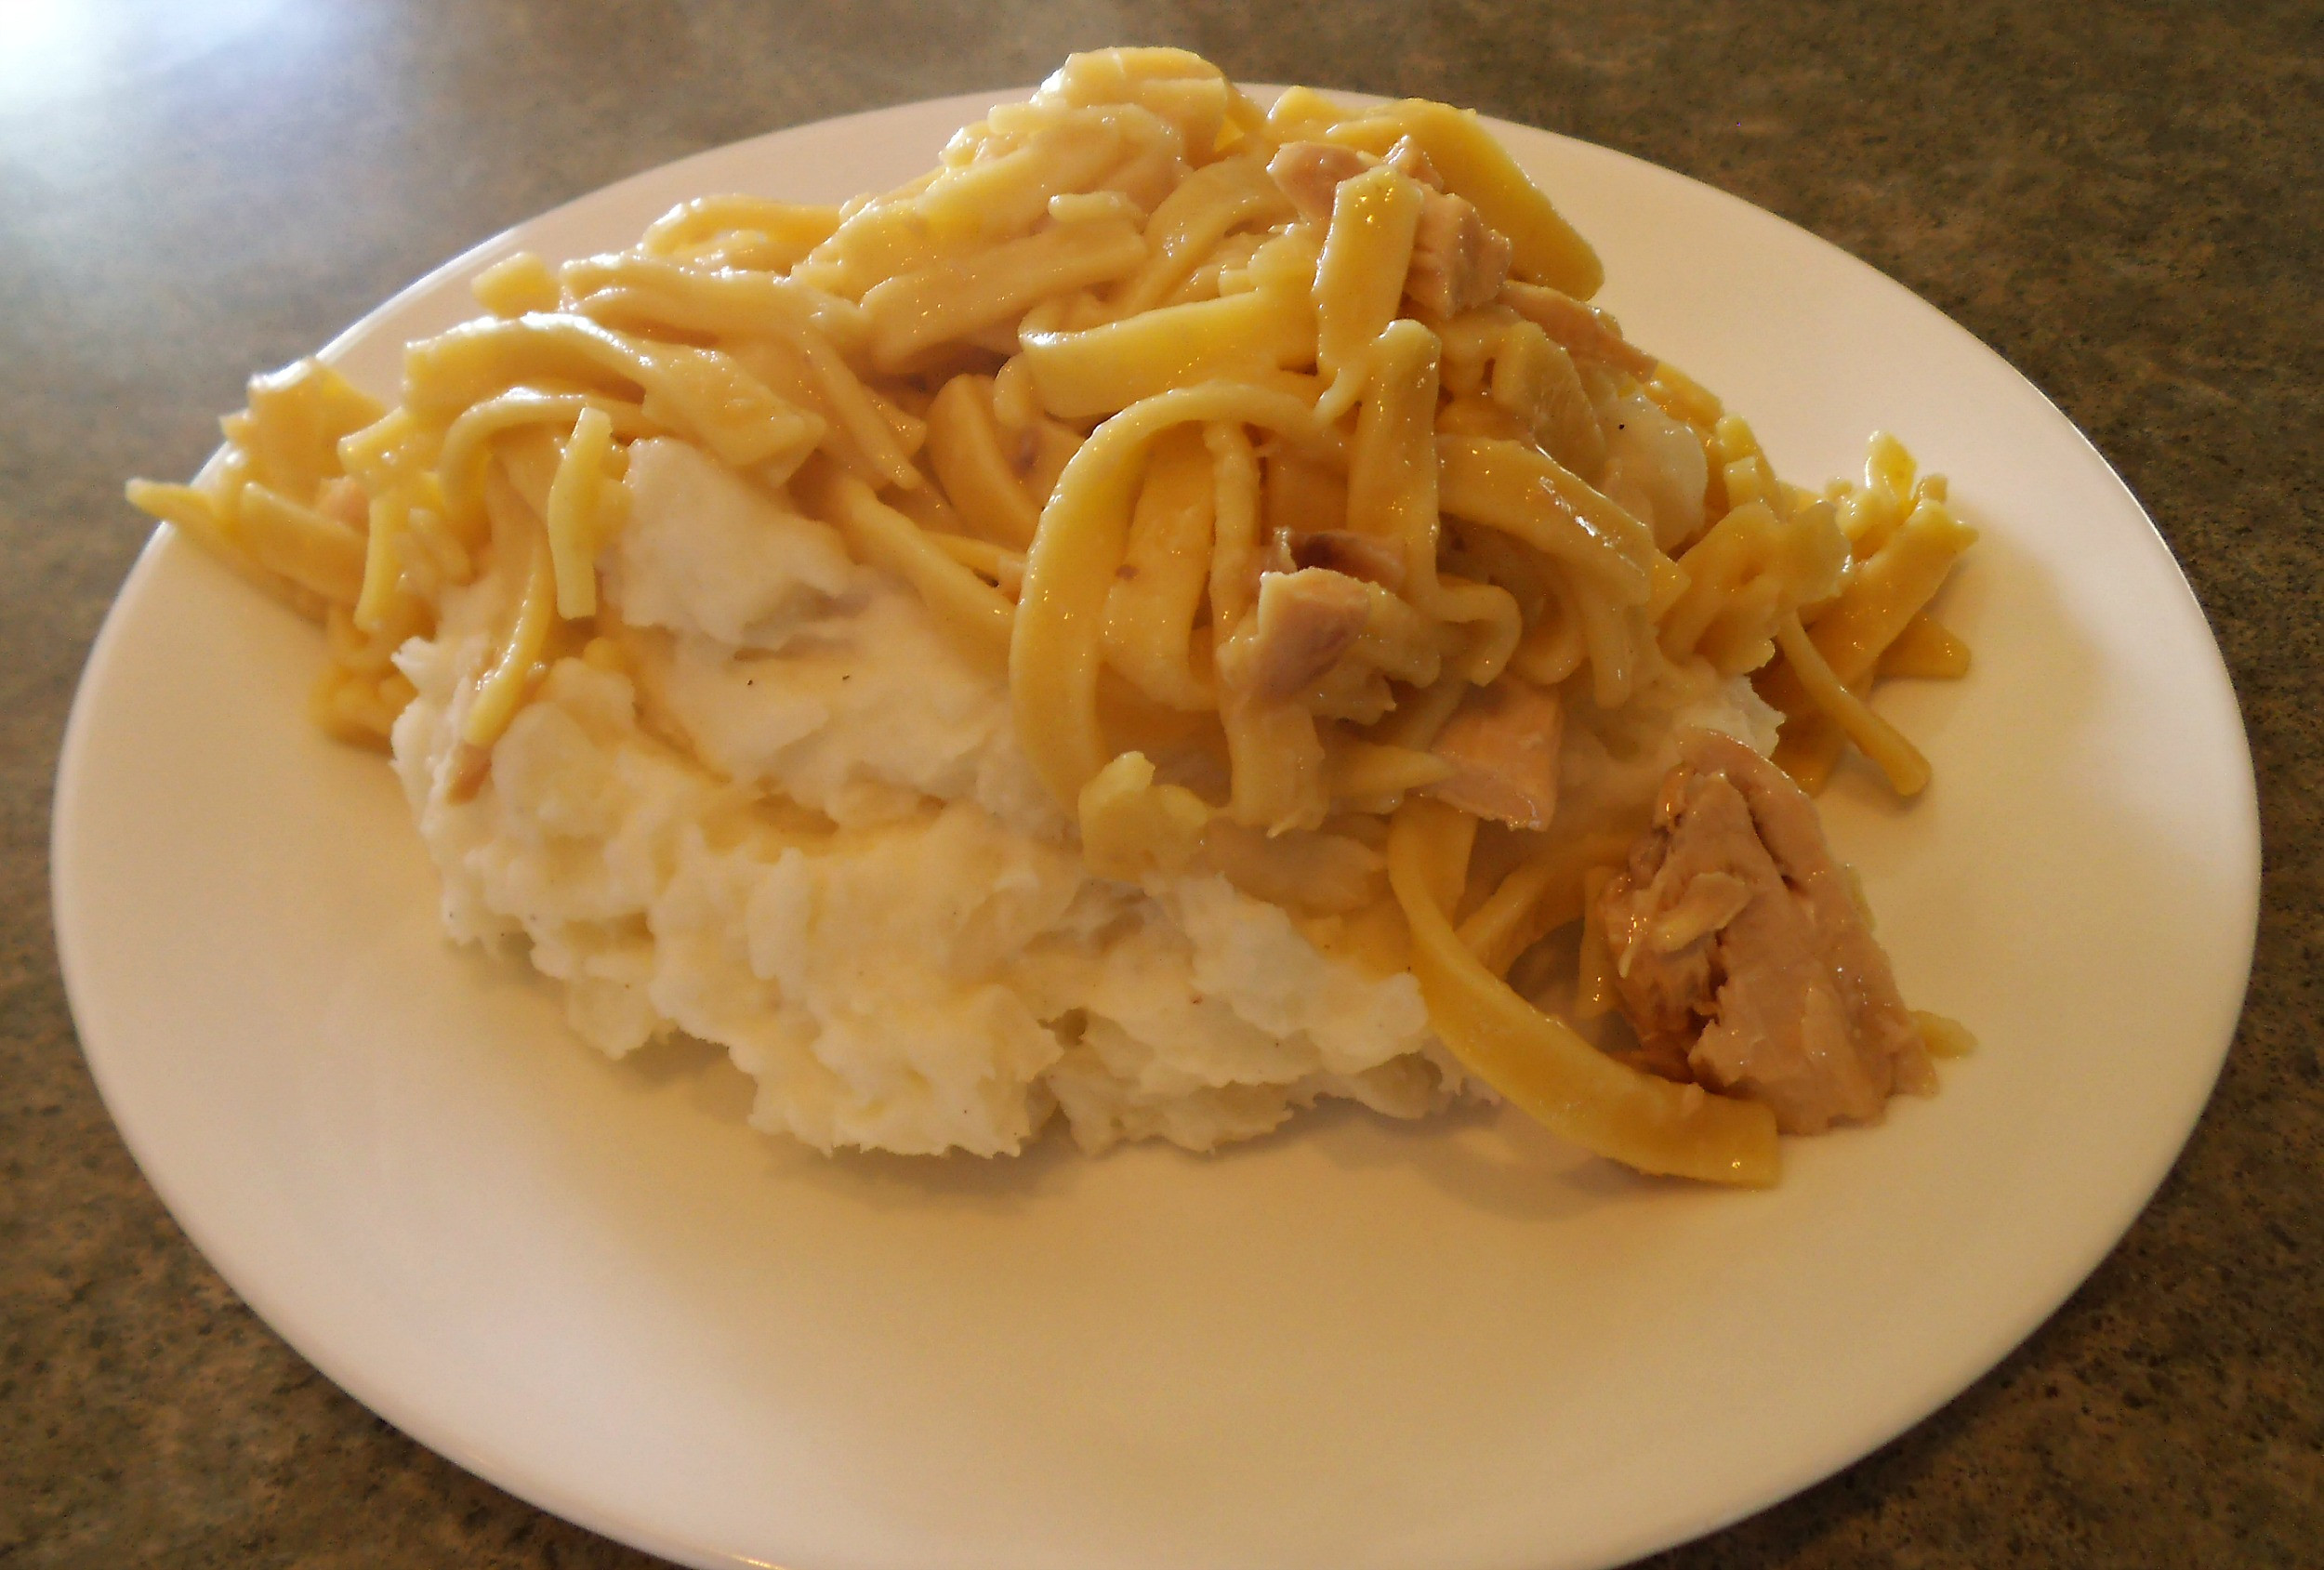 Homemade Chicken And Noodles  Amish Chicken and Noodles with Jan Drexler Amish Wisdom